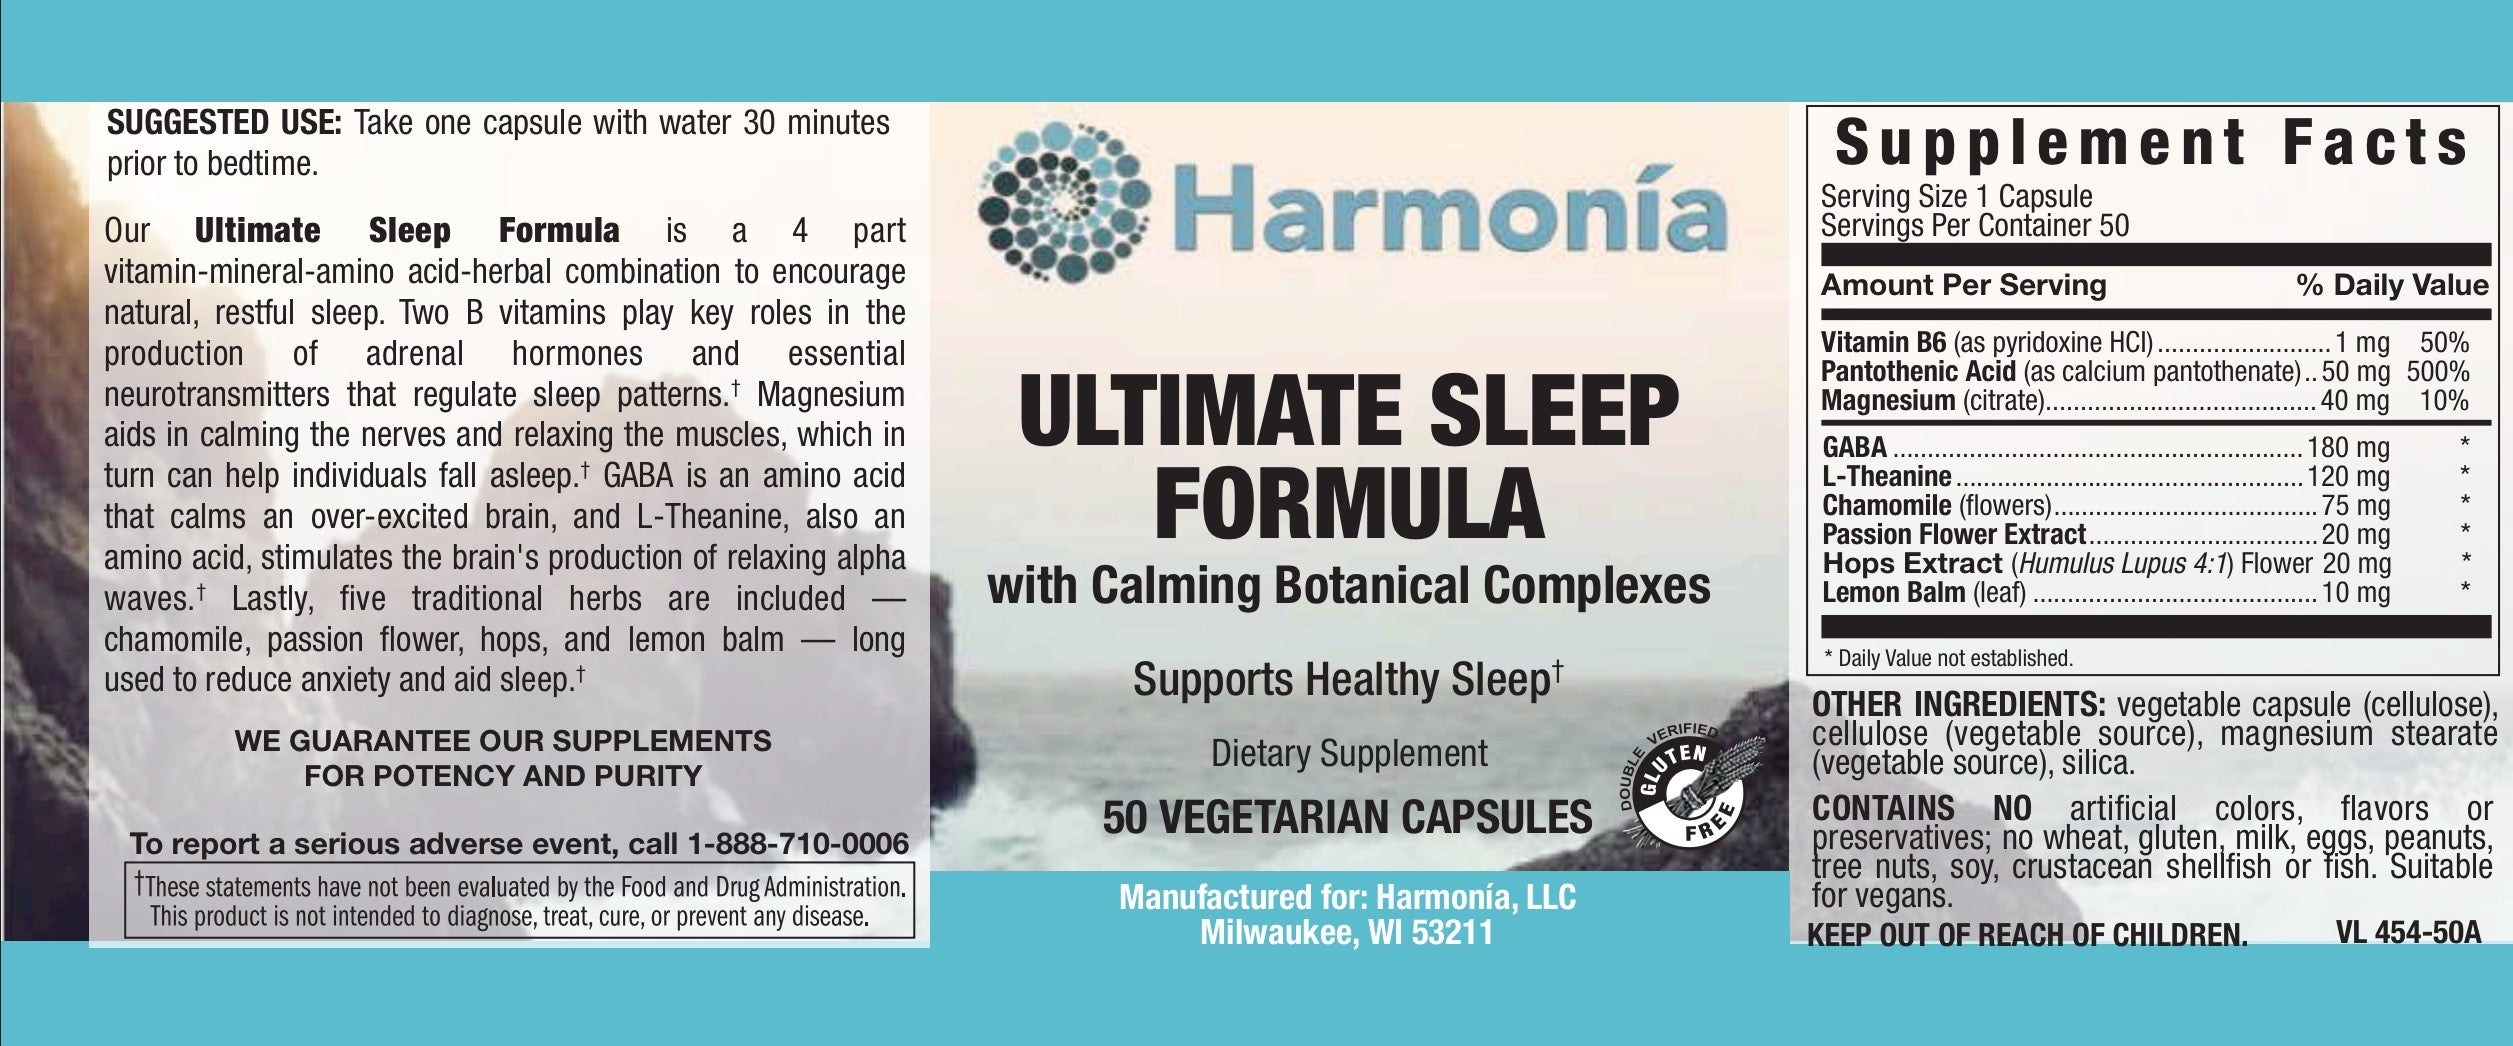 Ultimate Sleep Formula for Controlled & Better Sleep